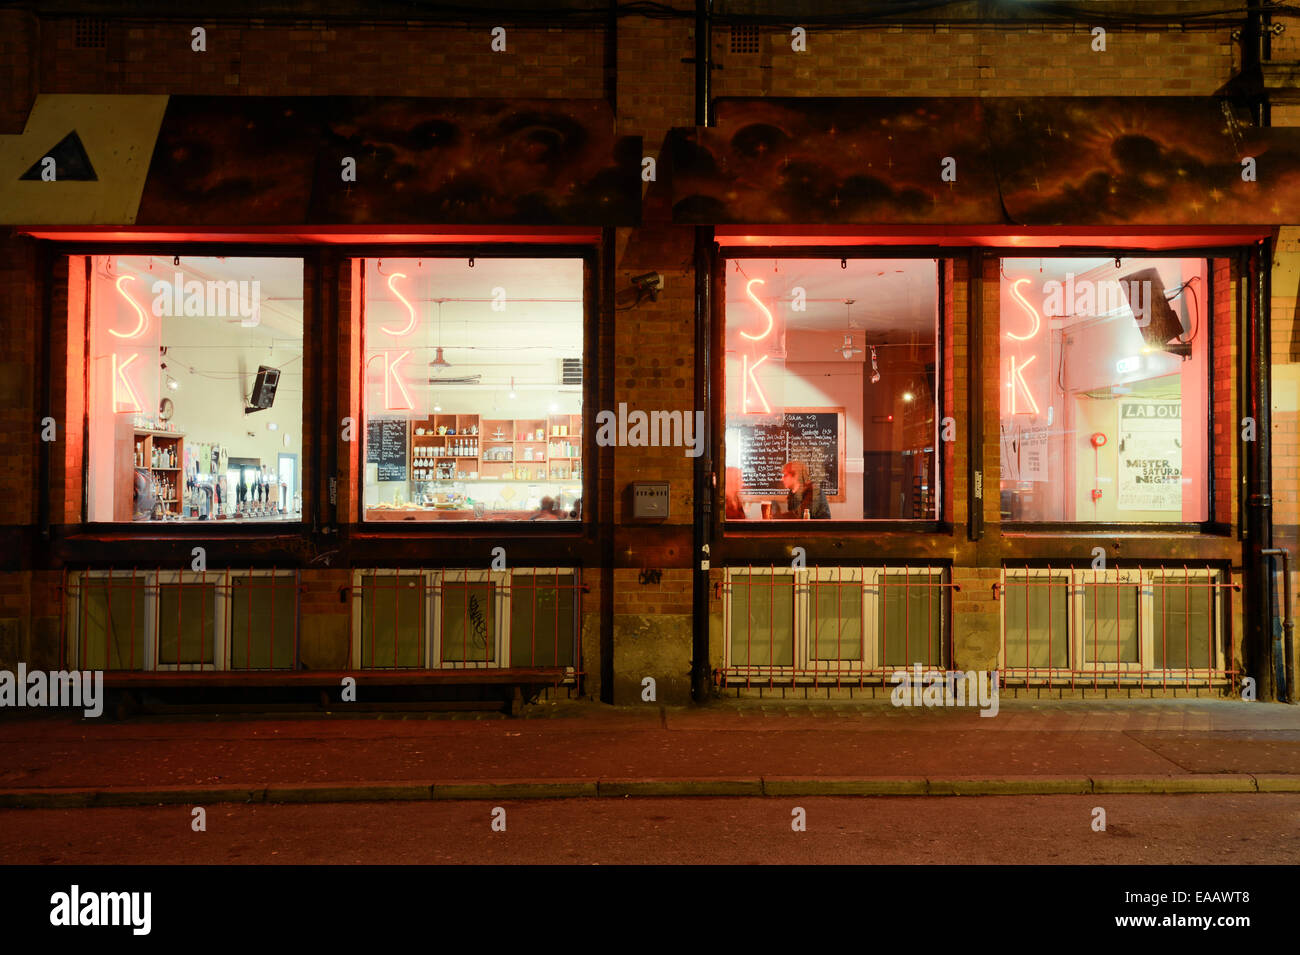 Soup Kitchen Bar located on Spear Street near Stephenson Square in the Northern Quarter of Manchester at night. - Stock Image